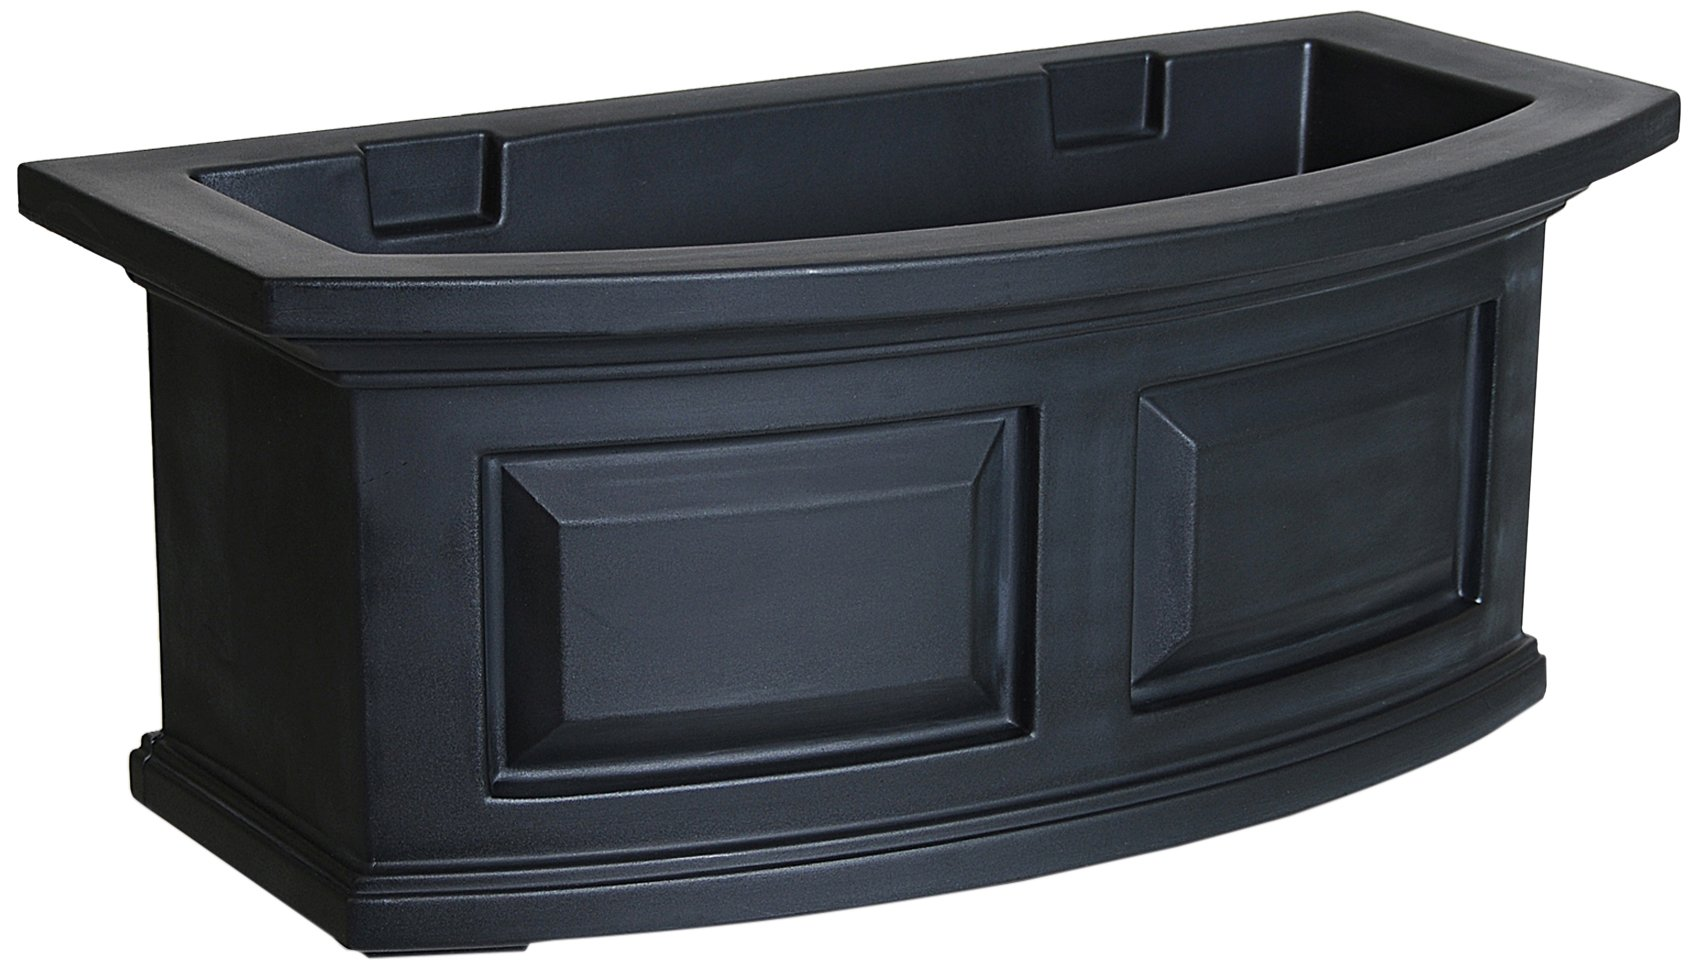 Mayne 4829-B Nantucket Polyethylene Window Box, 2', Black by Mayne